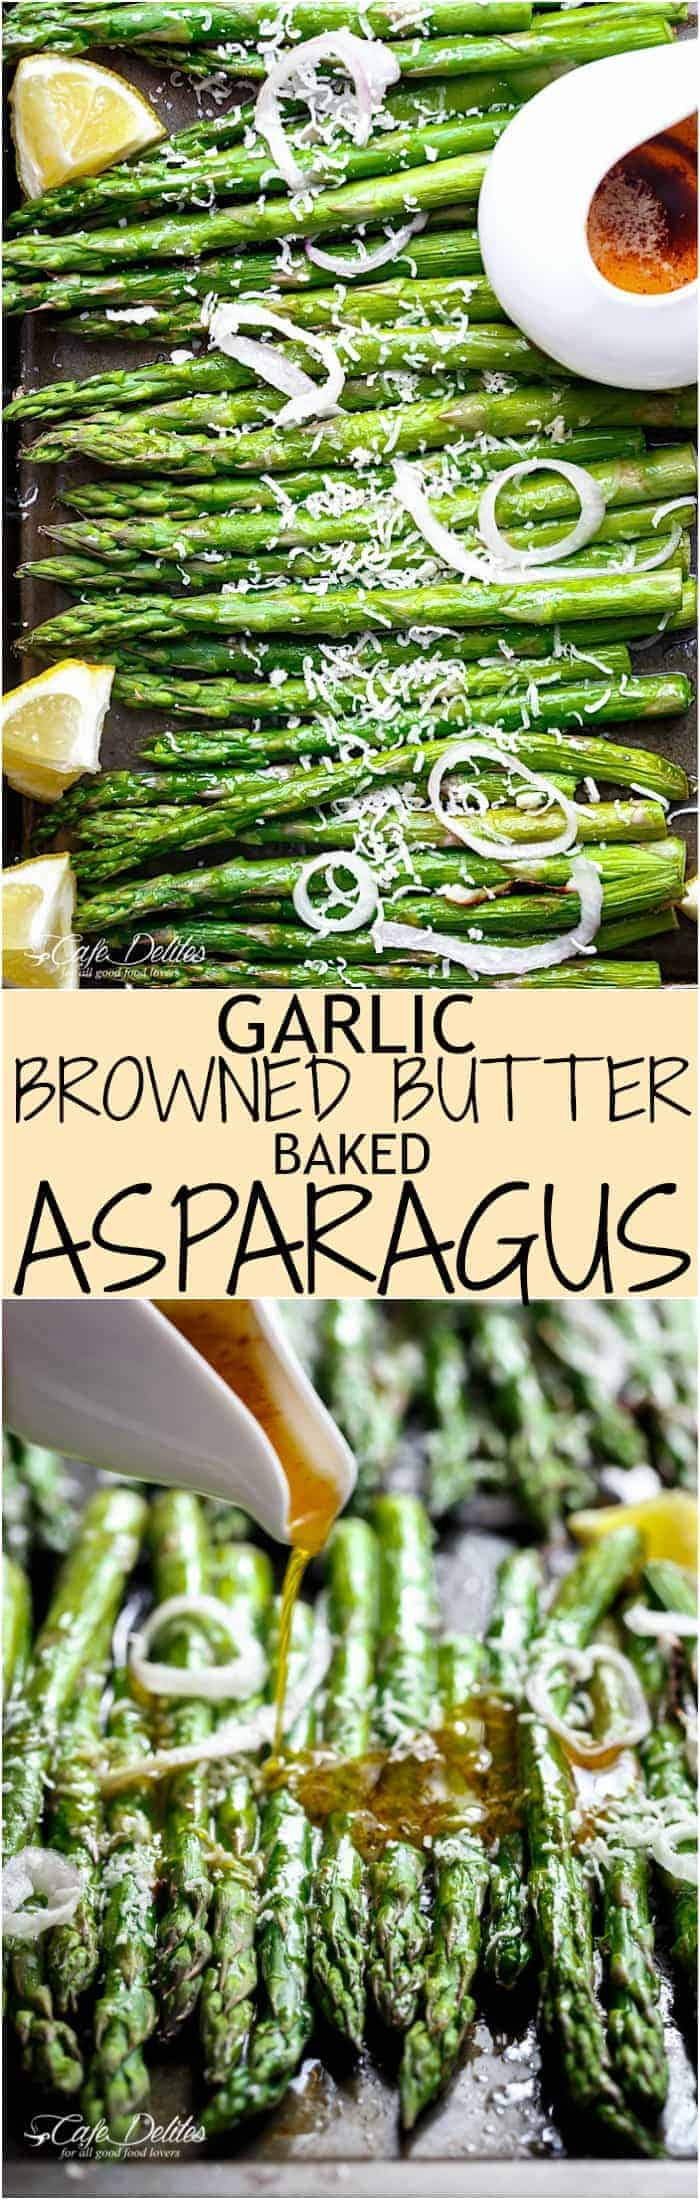 Garlic Browned Butter Baked Asparagus with Parmesan Cheese would have to be the perfect accompaniment or side dish! A delicious way to eat greens!   http://cafedelites.com